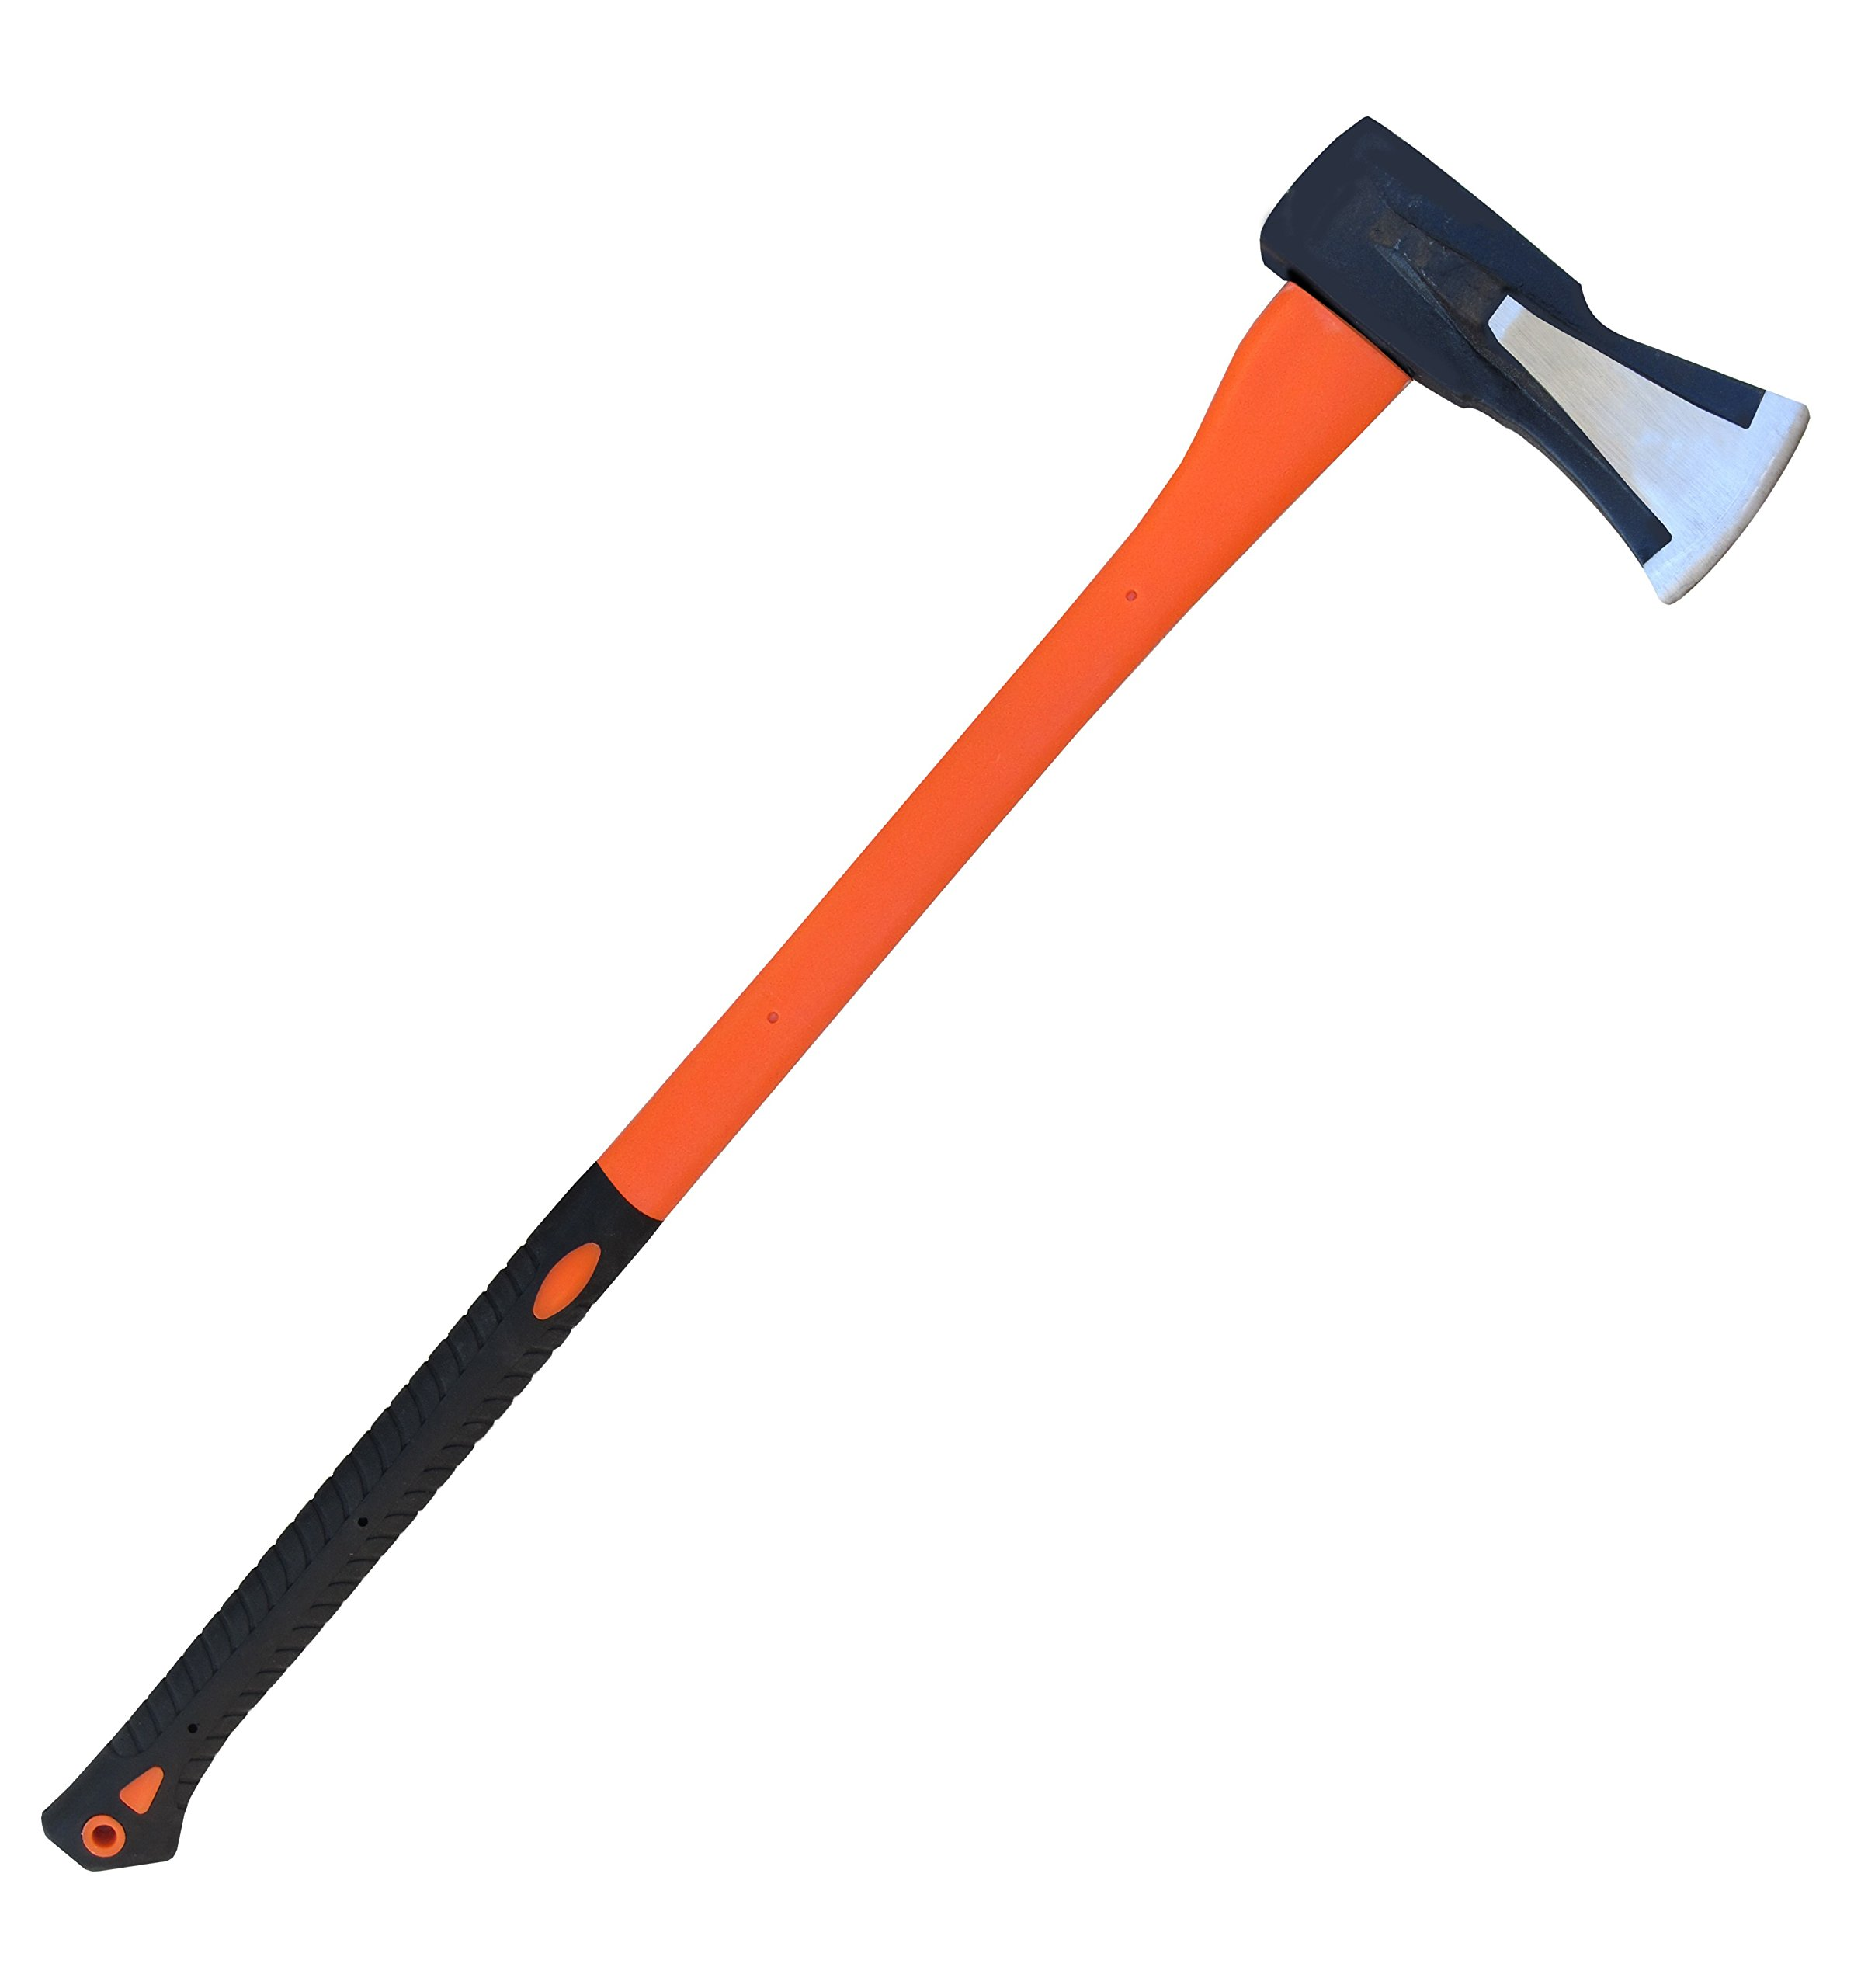 TABOR TOOLS J55A Splitting Axe, 35 Inch Wood Splitting Maul with Strong Fiberglass Handle and Anti-Slip Grip (Splitting Axe, 9 lb, 35 inch)